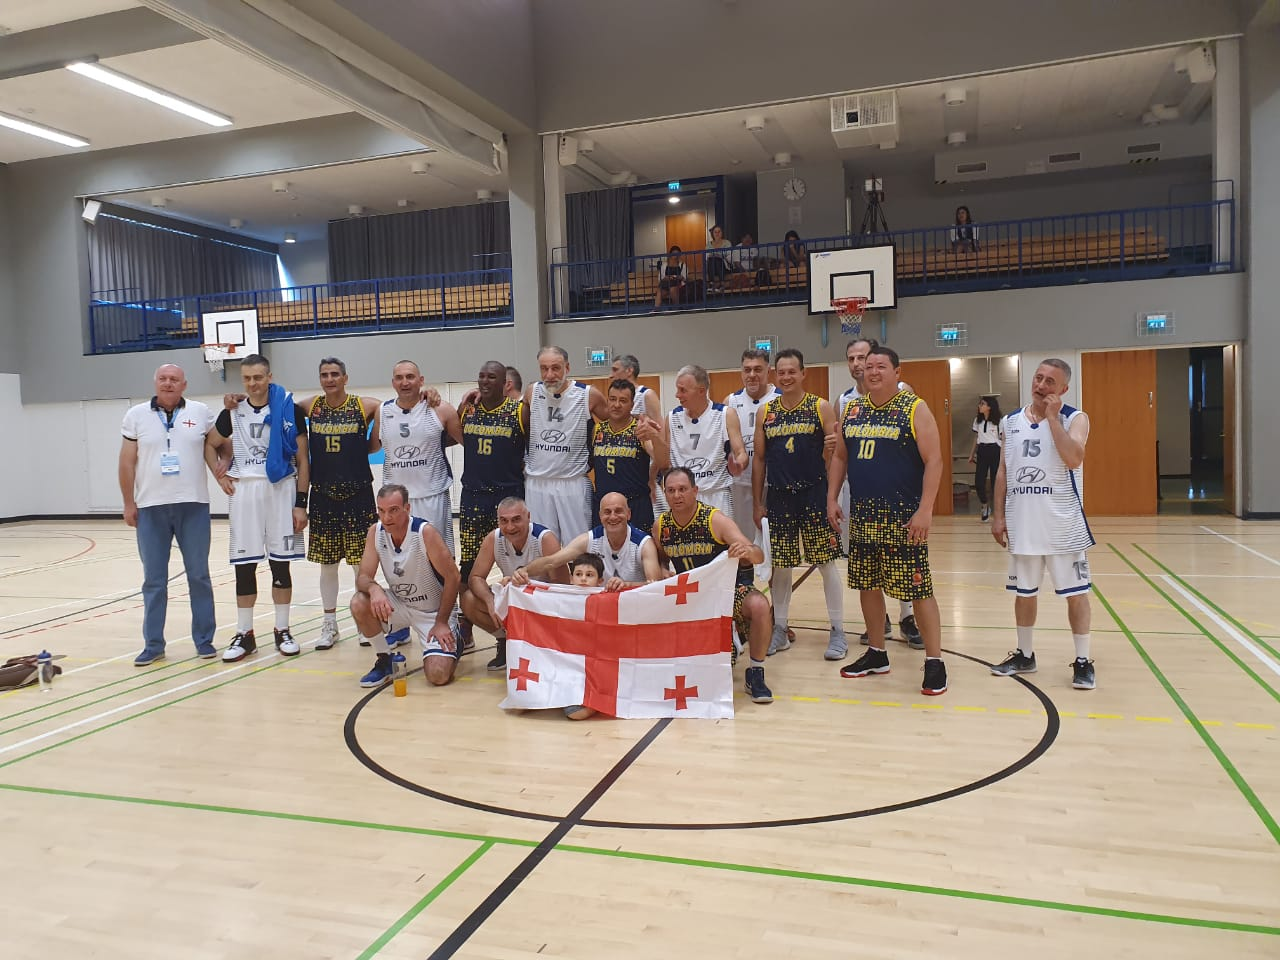 Georgian Veterans lost with Brazil by 2 points